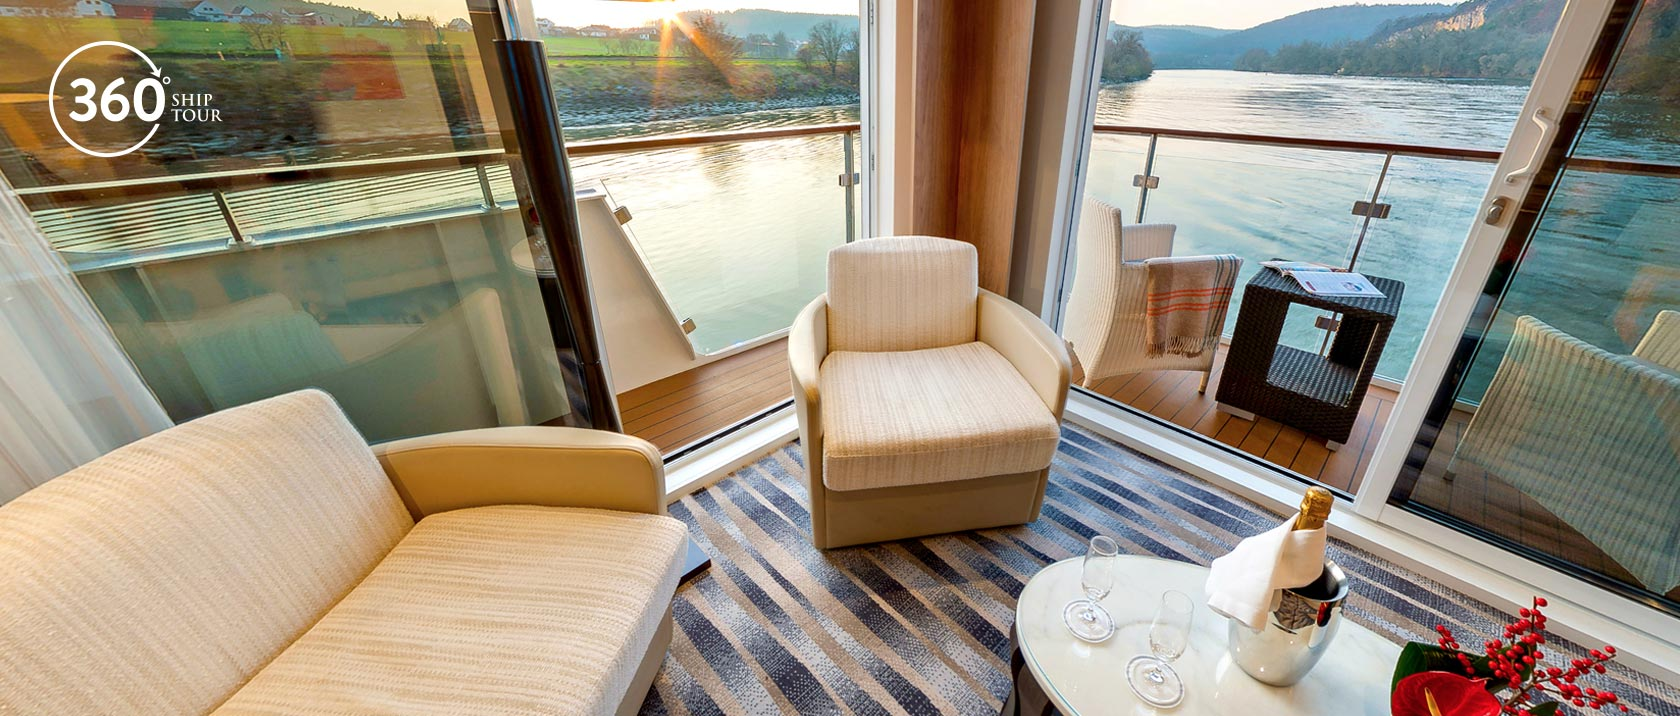 About Our Longships Viking River Cruises